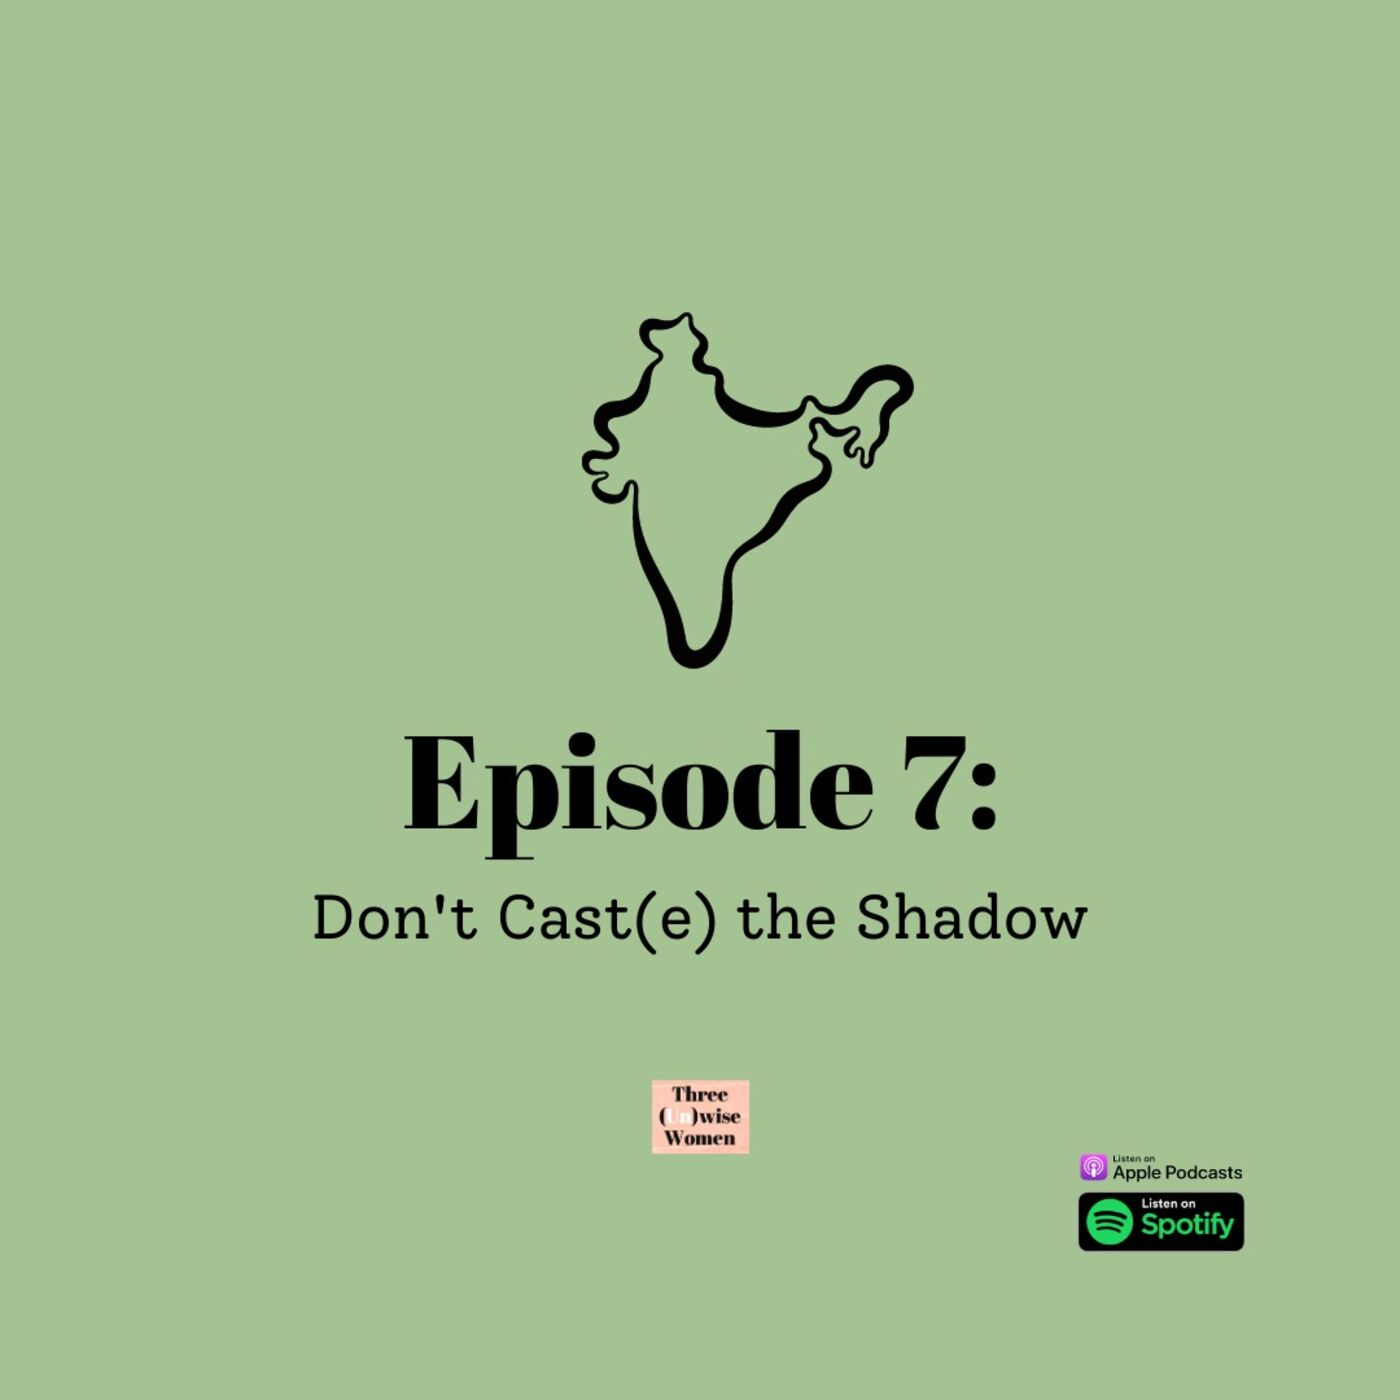 Don't Cast[e] the Shadow